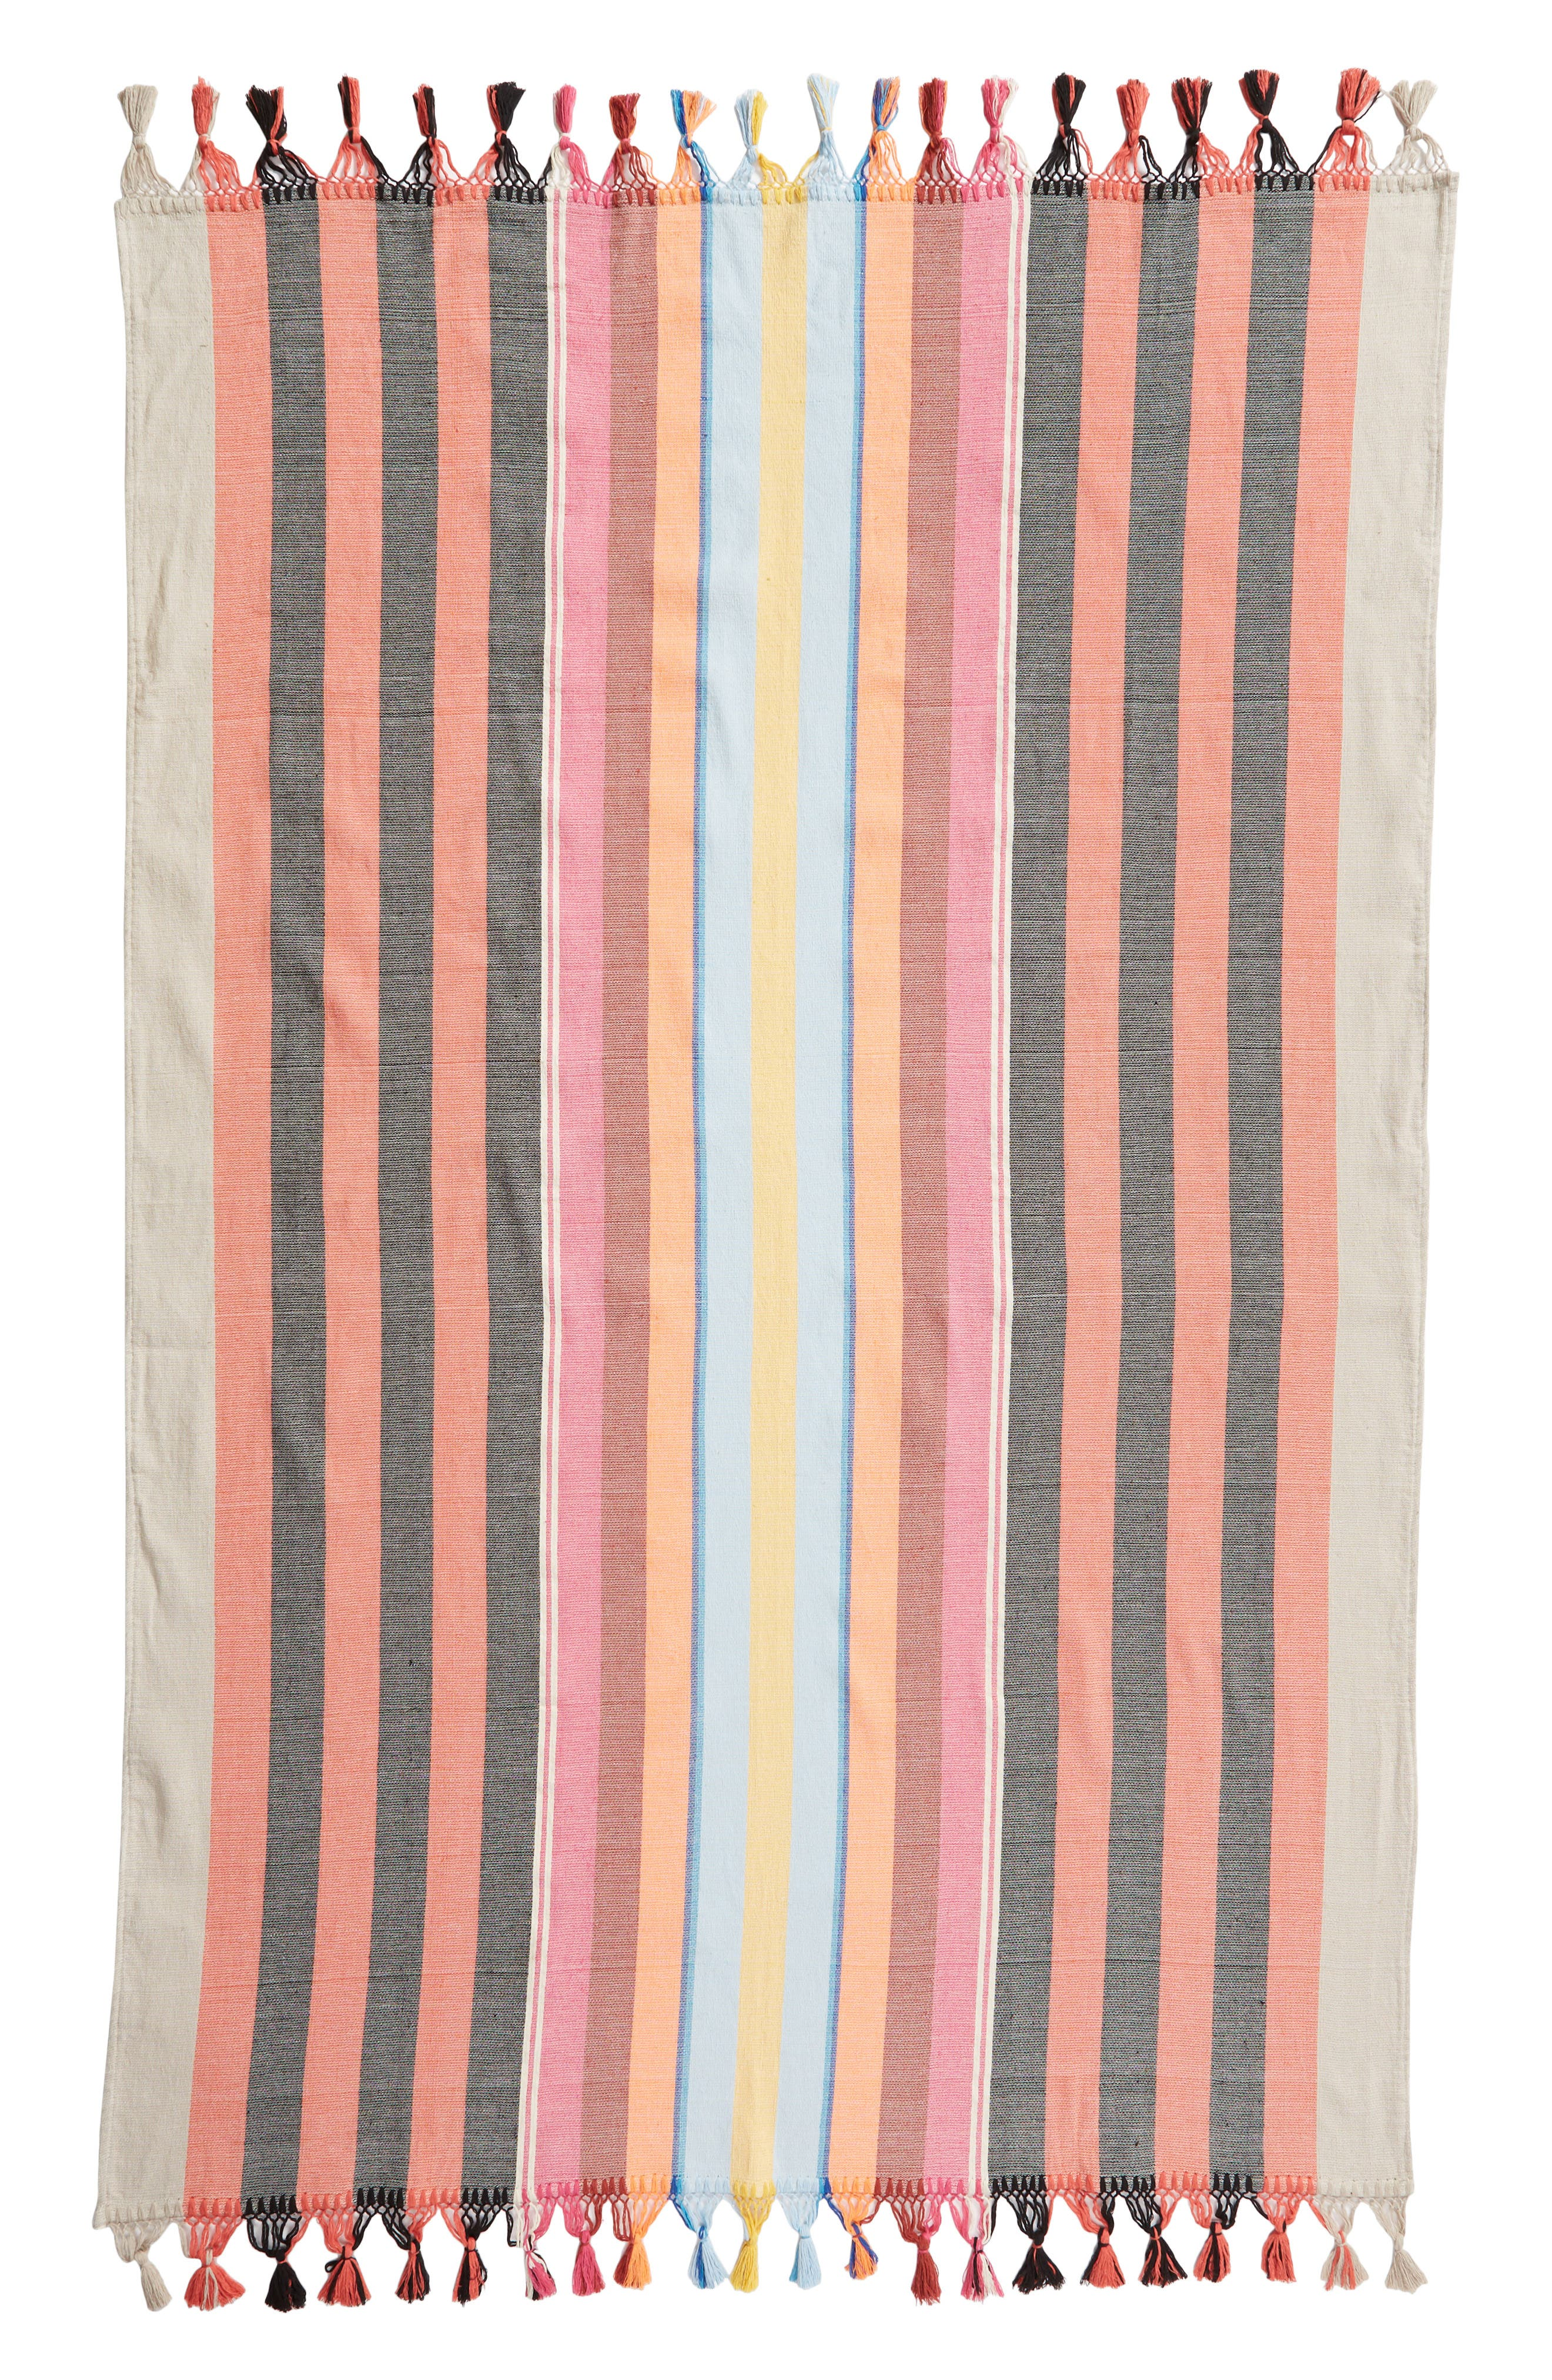 Indian Summer Woven Cotton Blanket,                             Alternate thumbnail 2, color,                             800